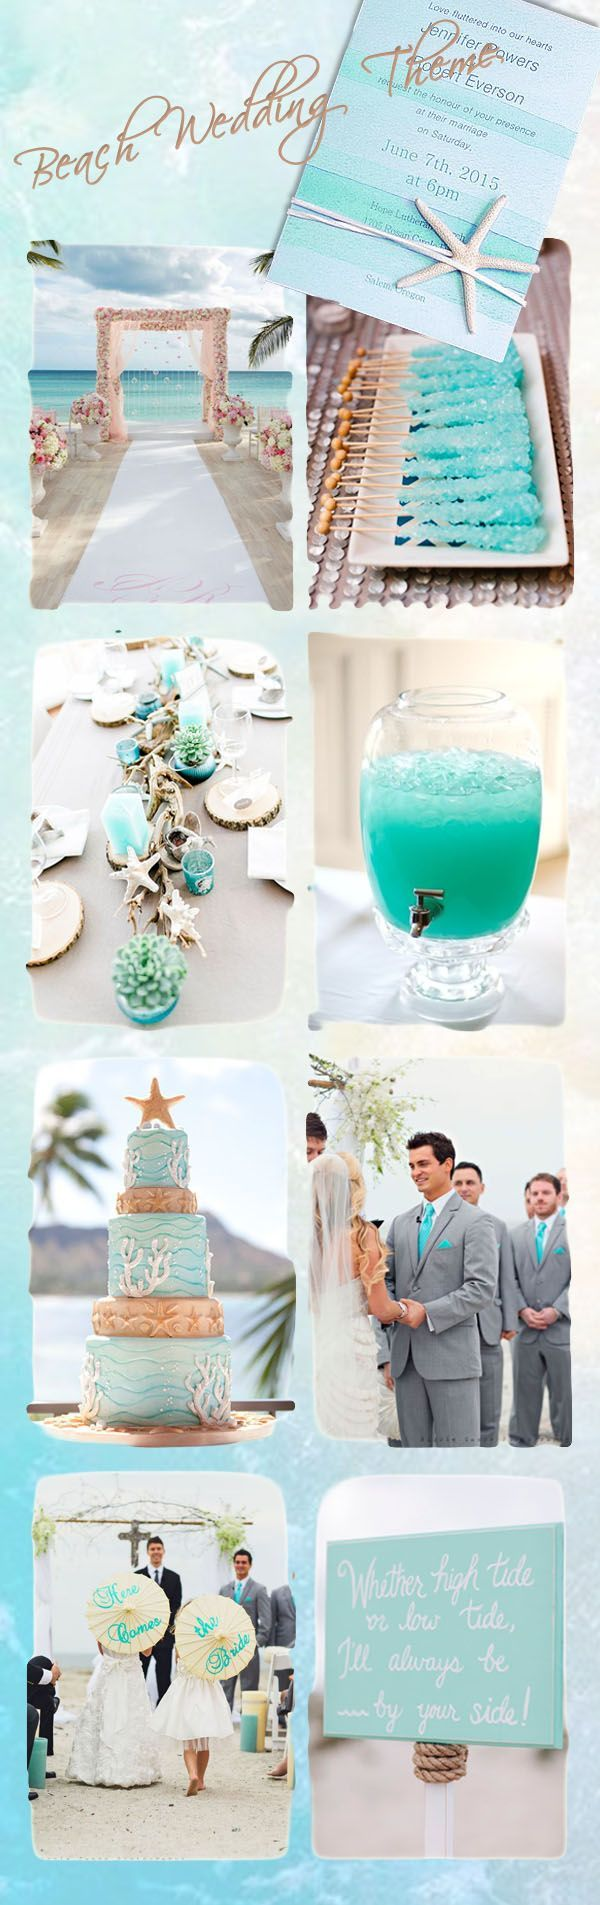 Top Ten Wedding Theme Ideas With Beautiful Invitations-Part One ...